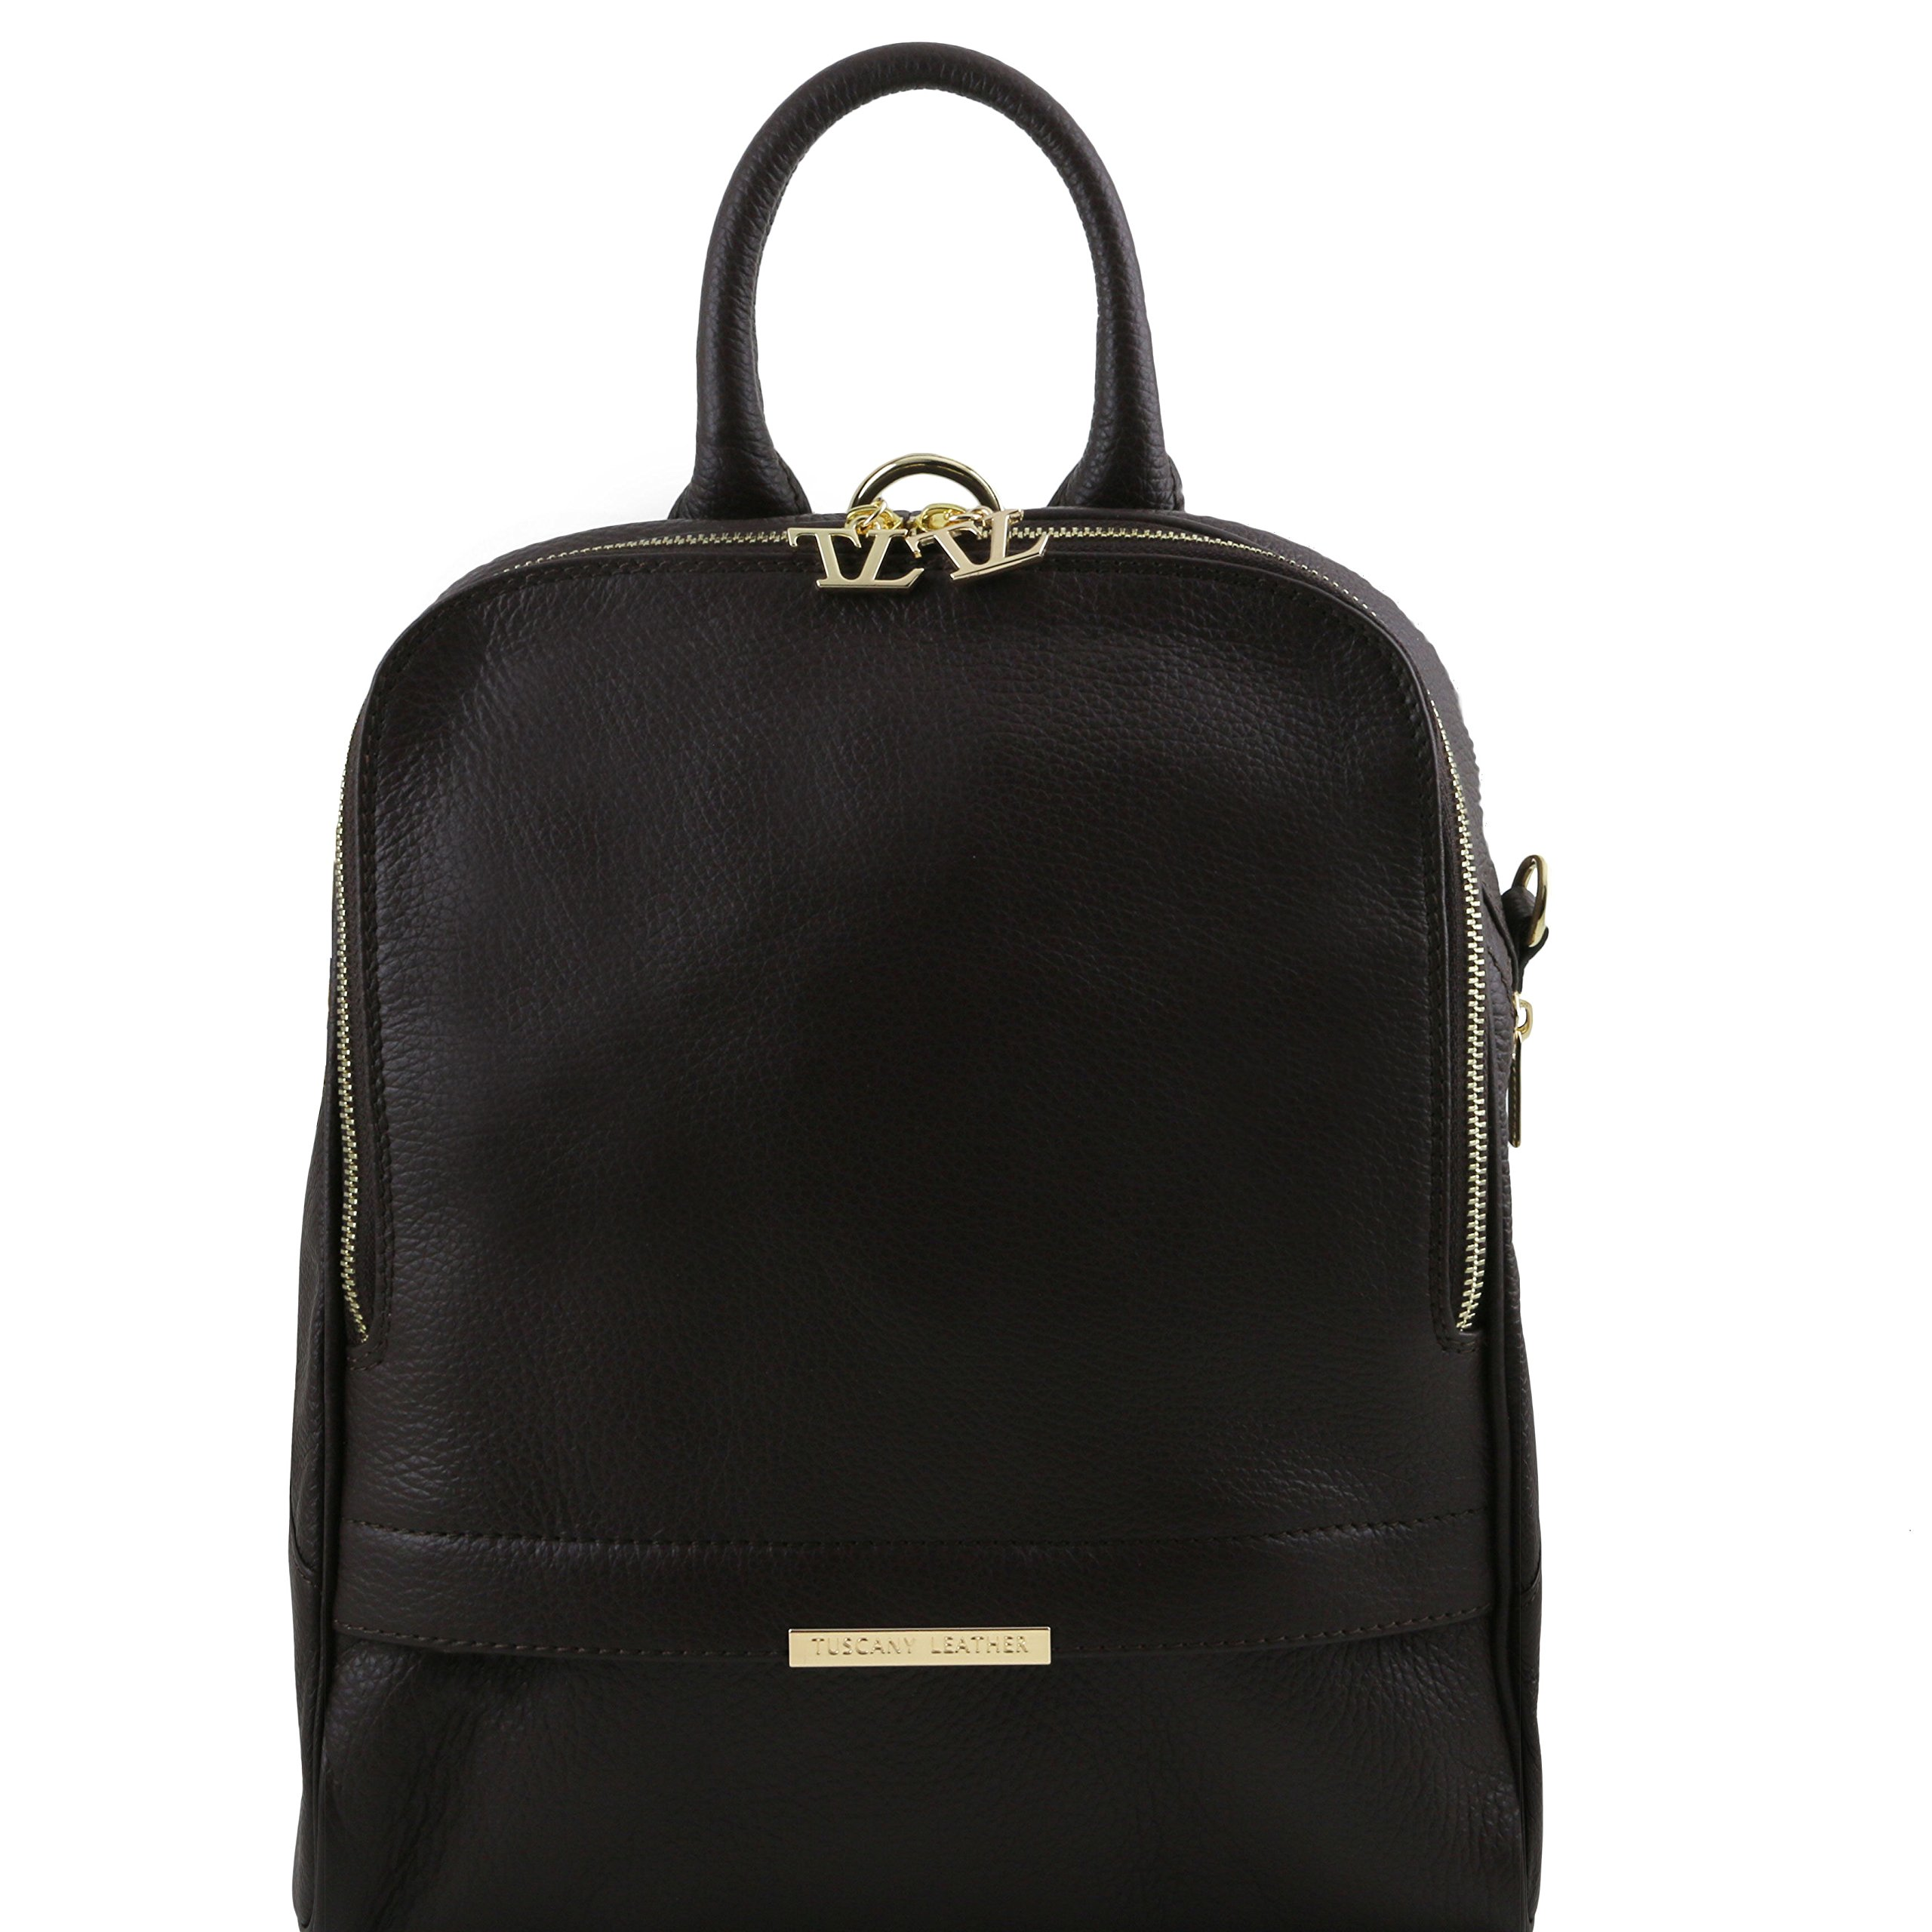 Tuscany Leather TLBag Soft leather backpack for women Black